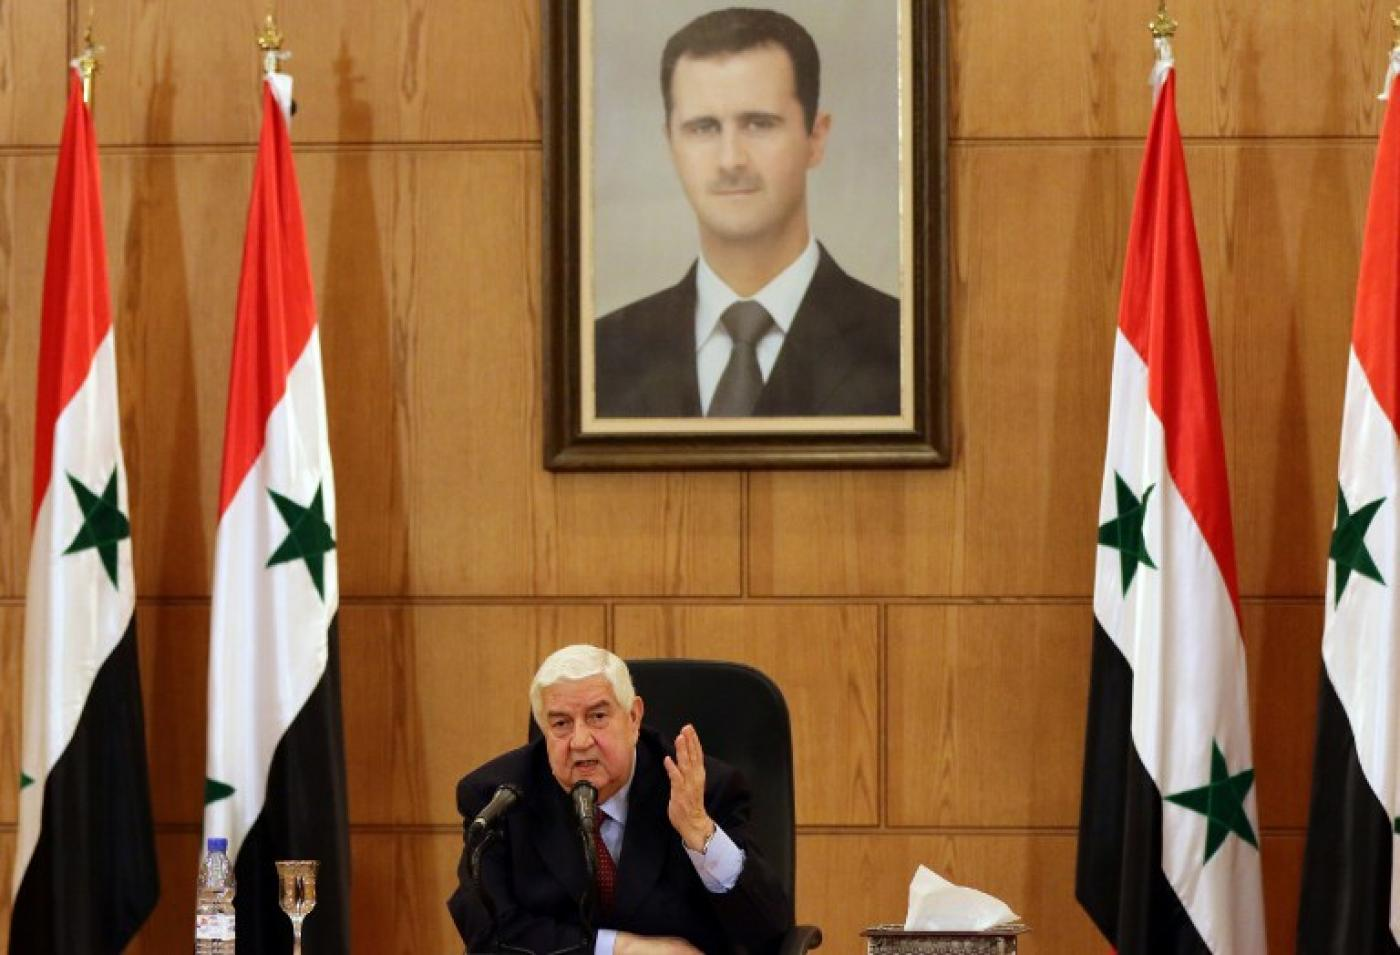 Syrian Foreign Minister Walid al-Moallem dies aged 79